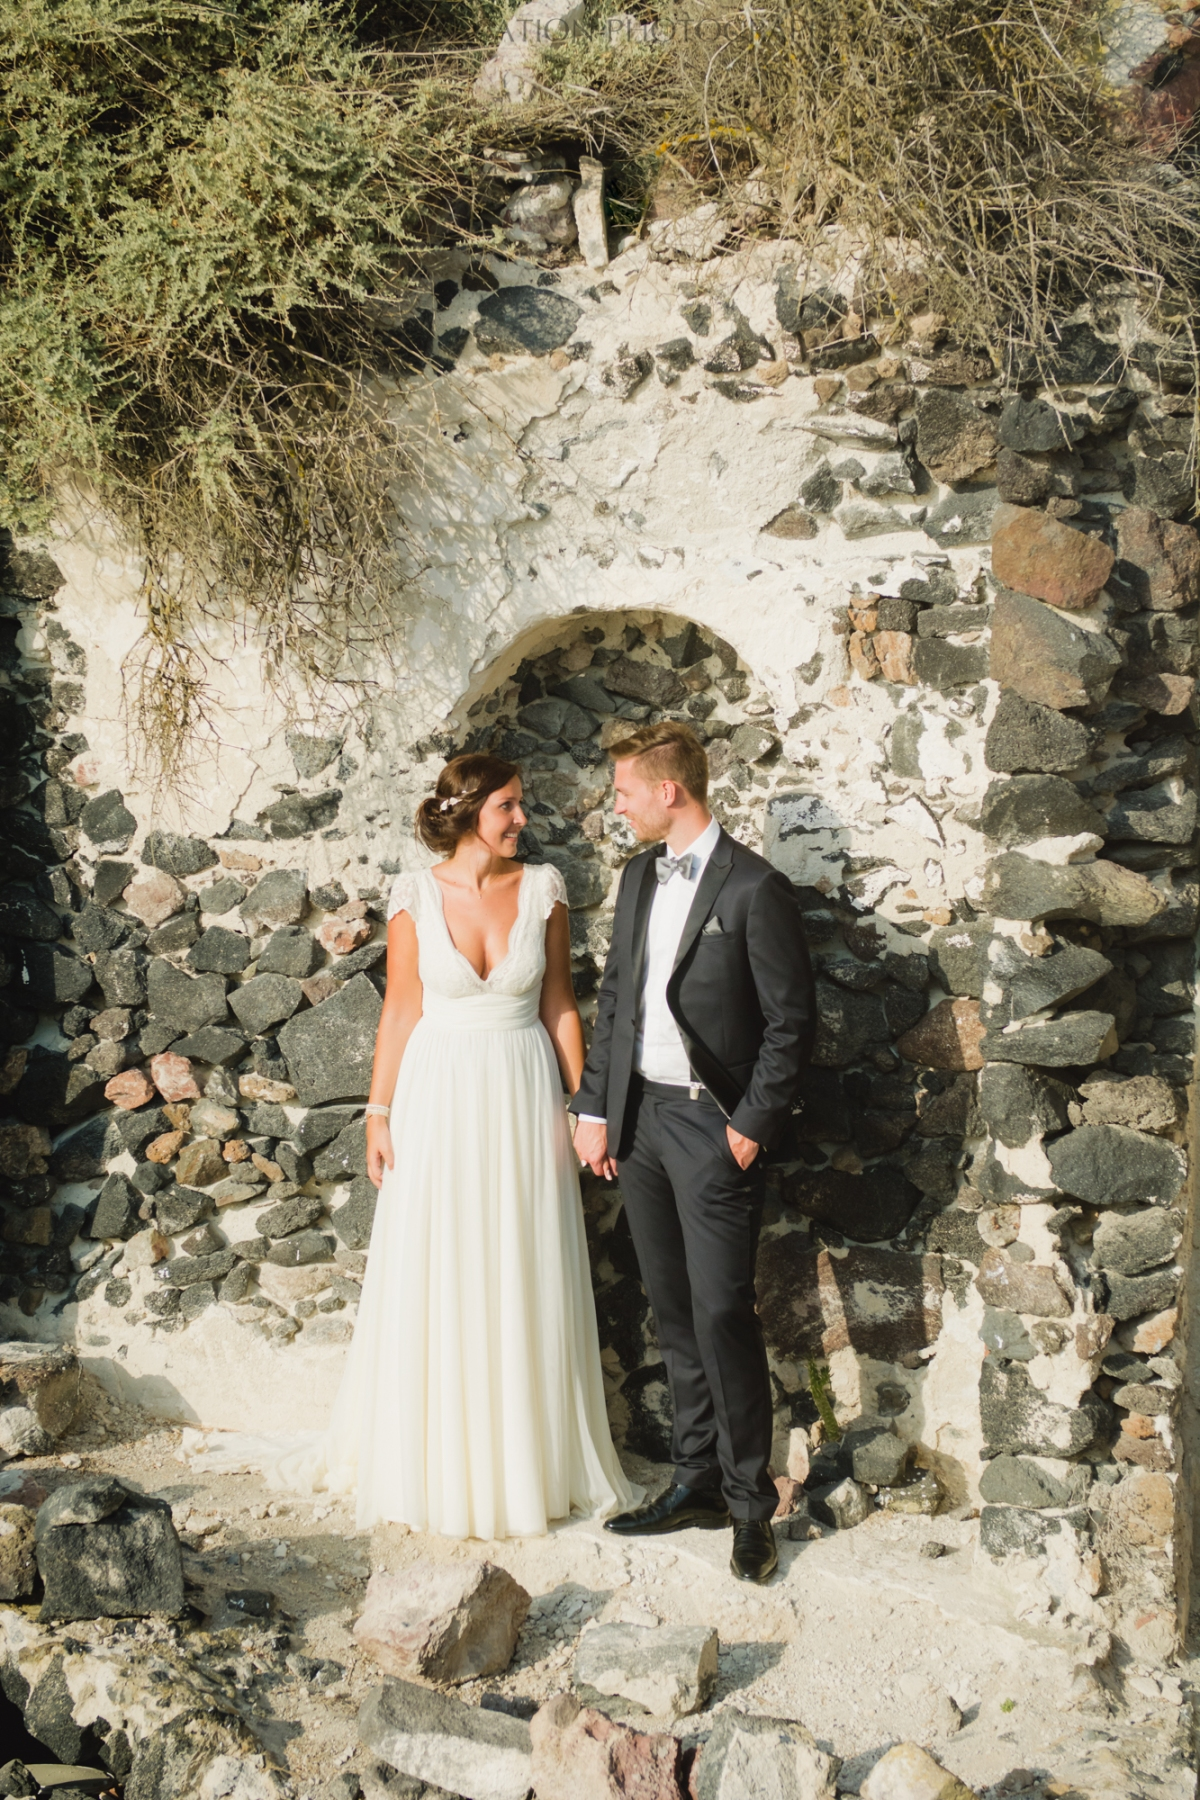 photo-session-santorini-caldera-honeymoon-wedding-dress-5